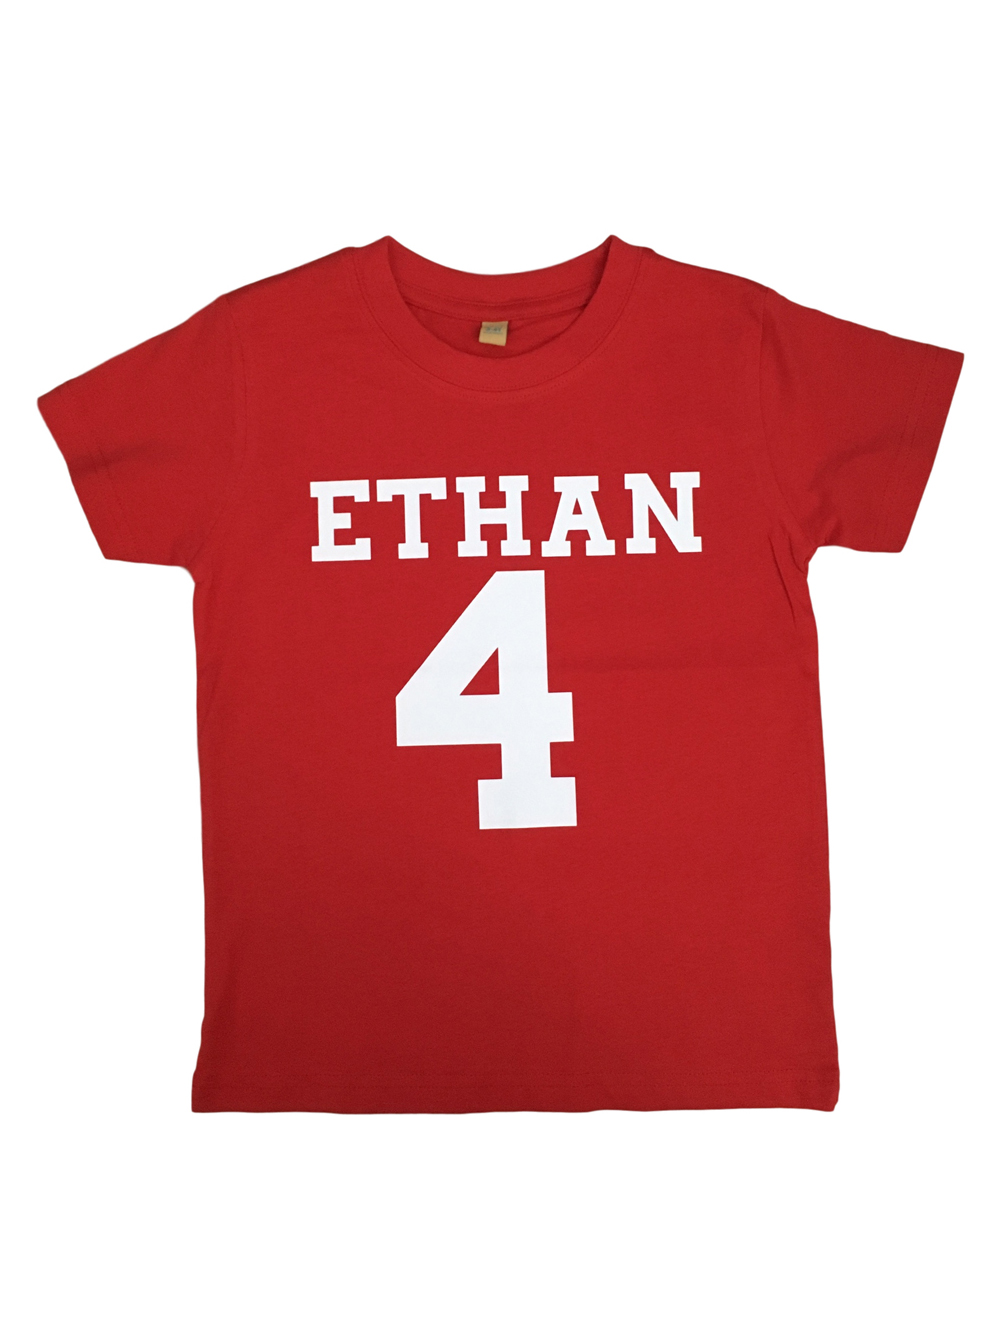 Name And Number Tshirt – Boys